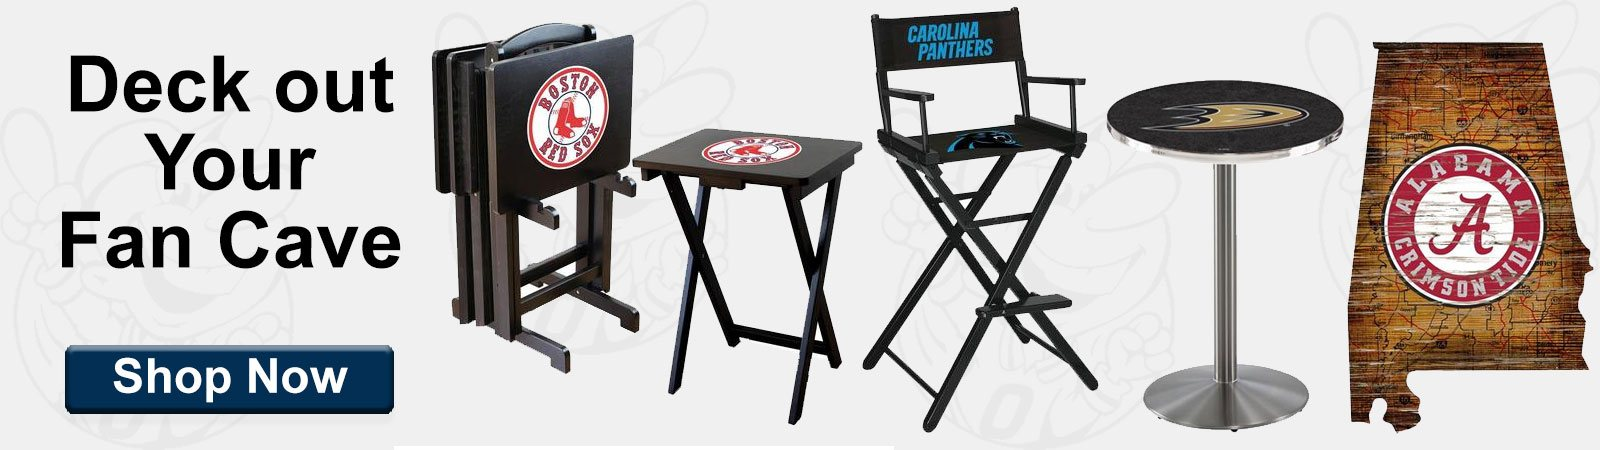 Deck Out Your Fan Cave With Your Favorite Team Gear!